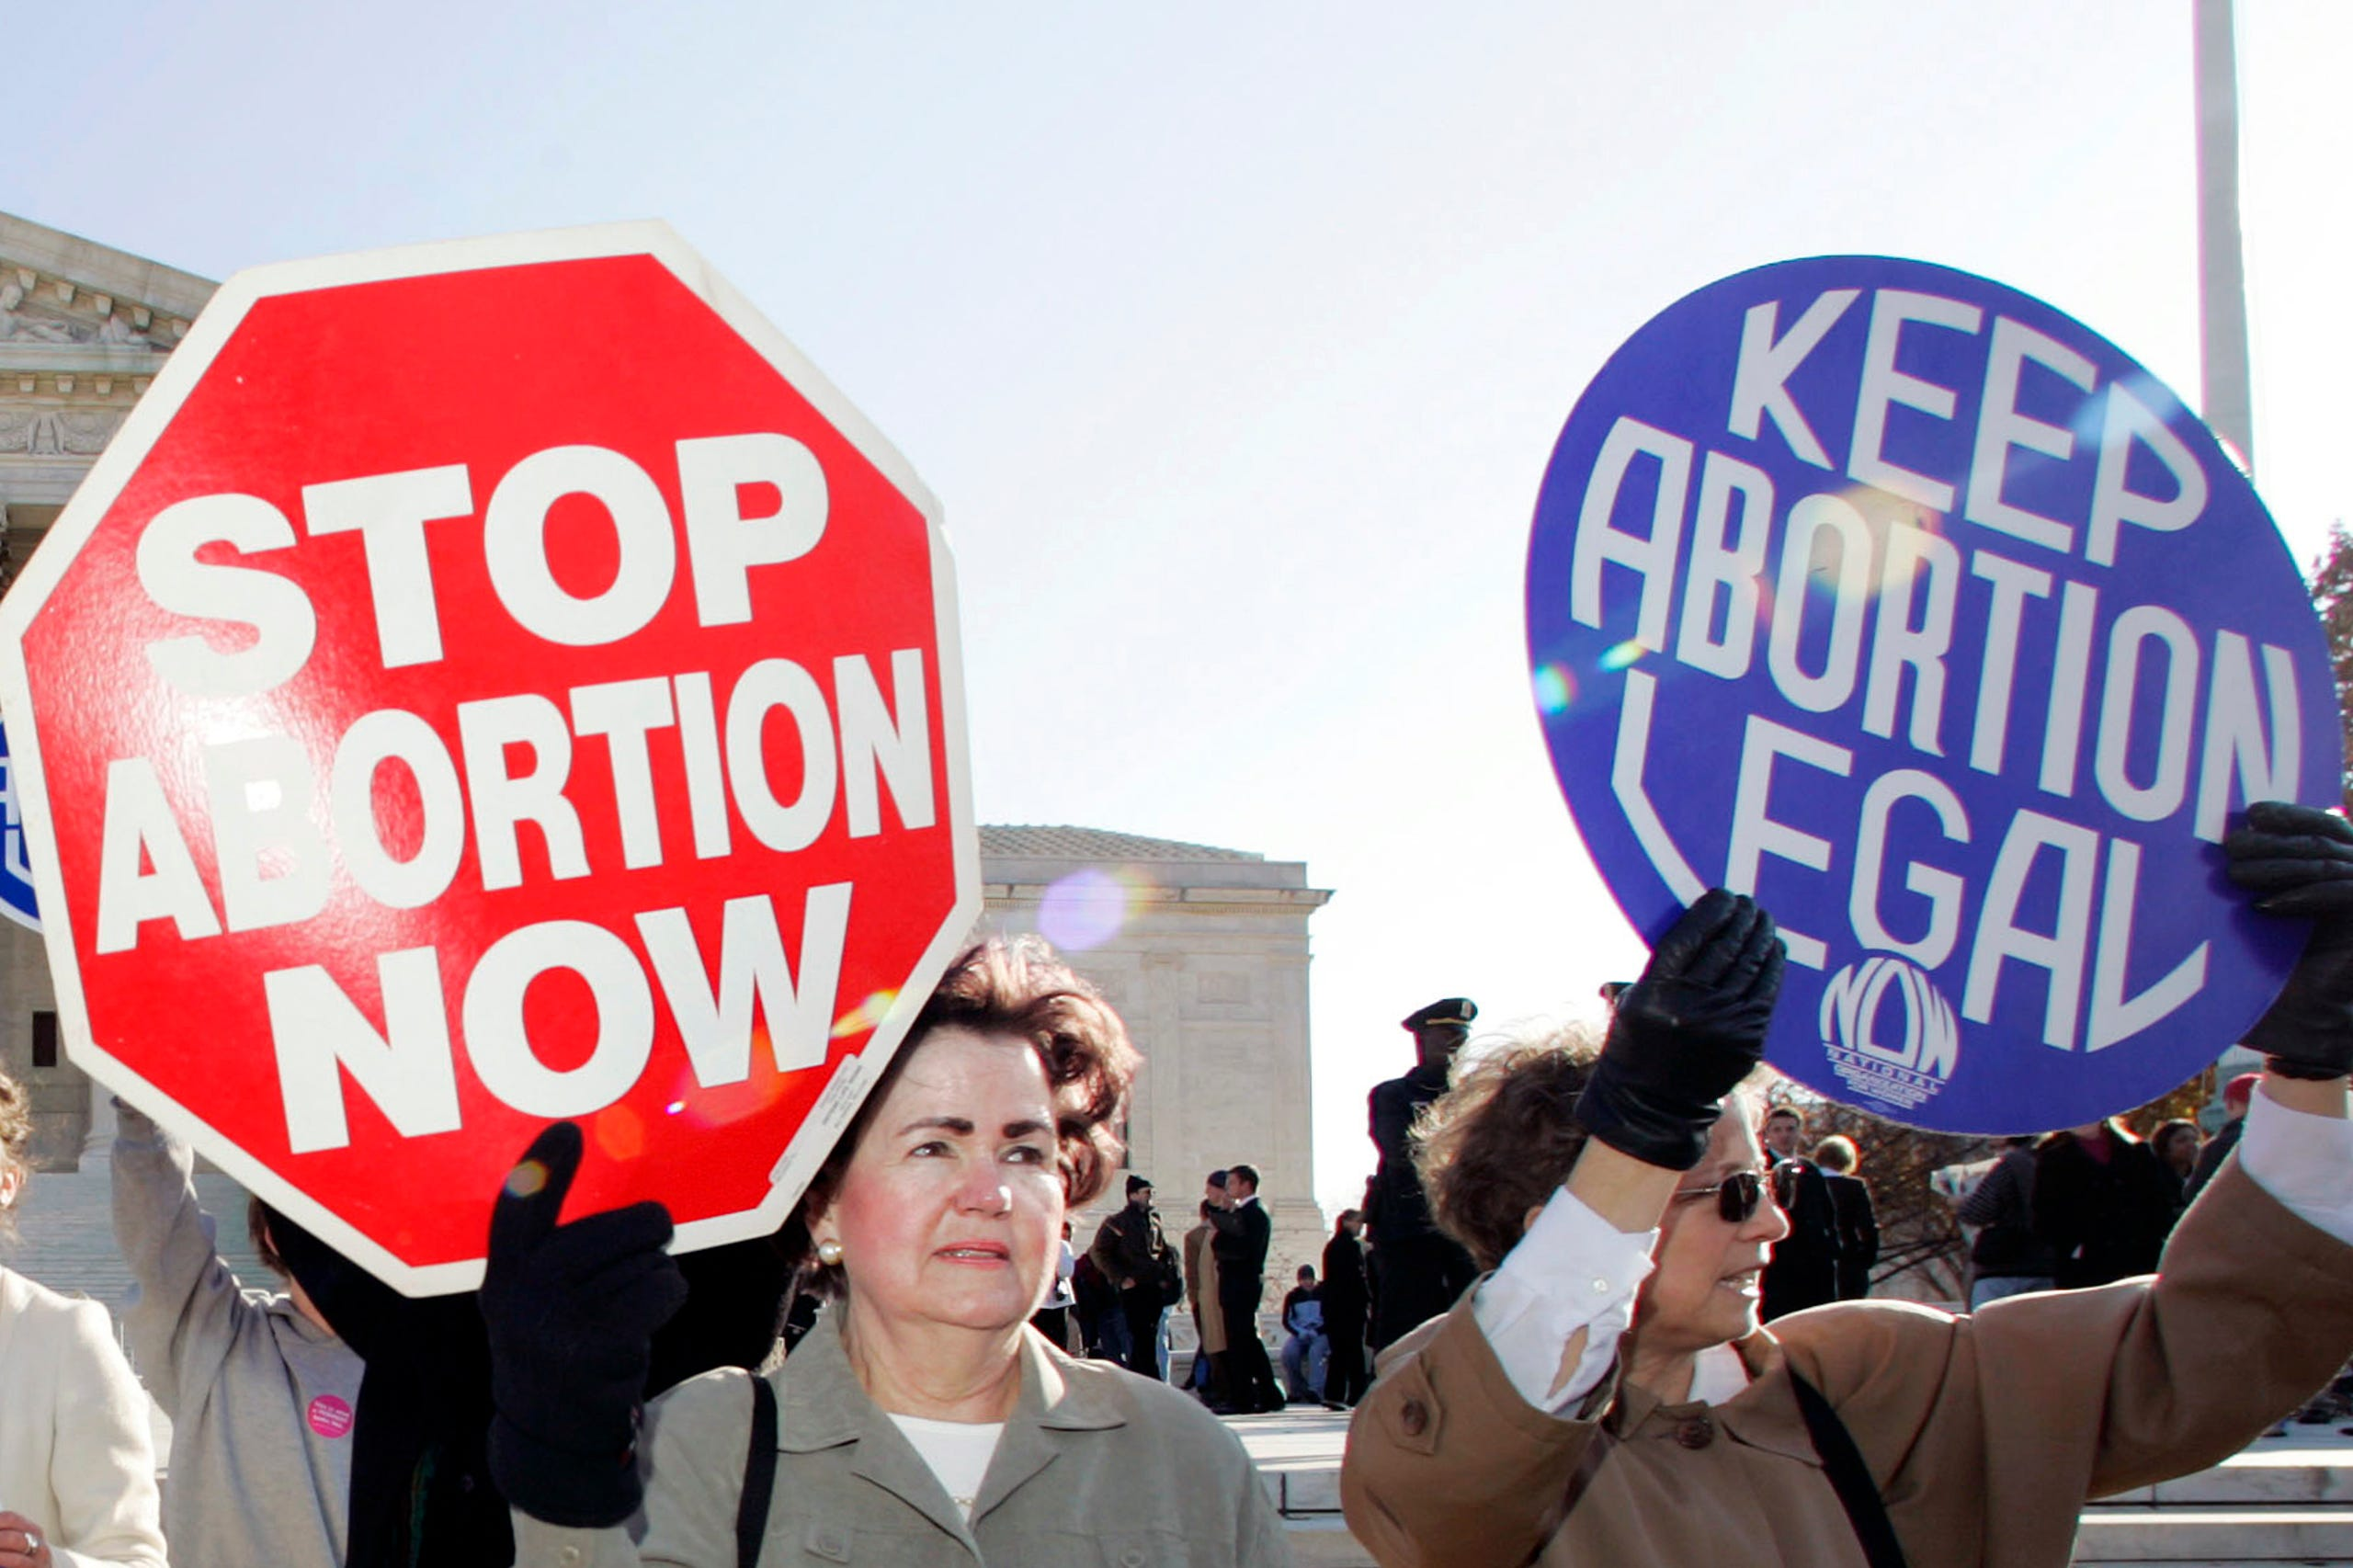 In this Nov. 30, 2005 file photo, an anti-abortion supporter stands next to a  pro-choice demonstrator outside the U.S. Supreme Court in Washington.